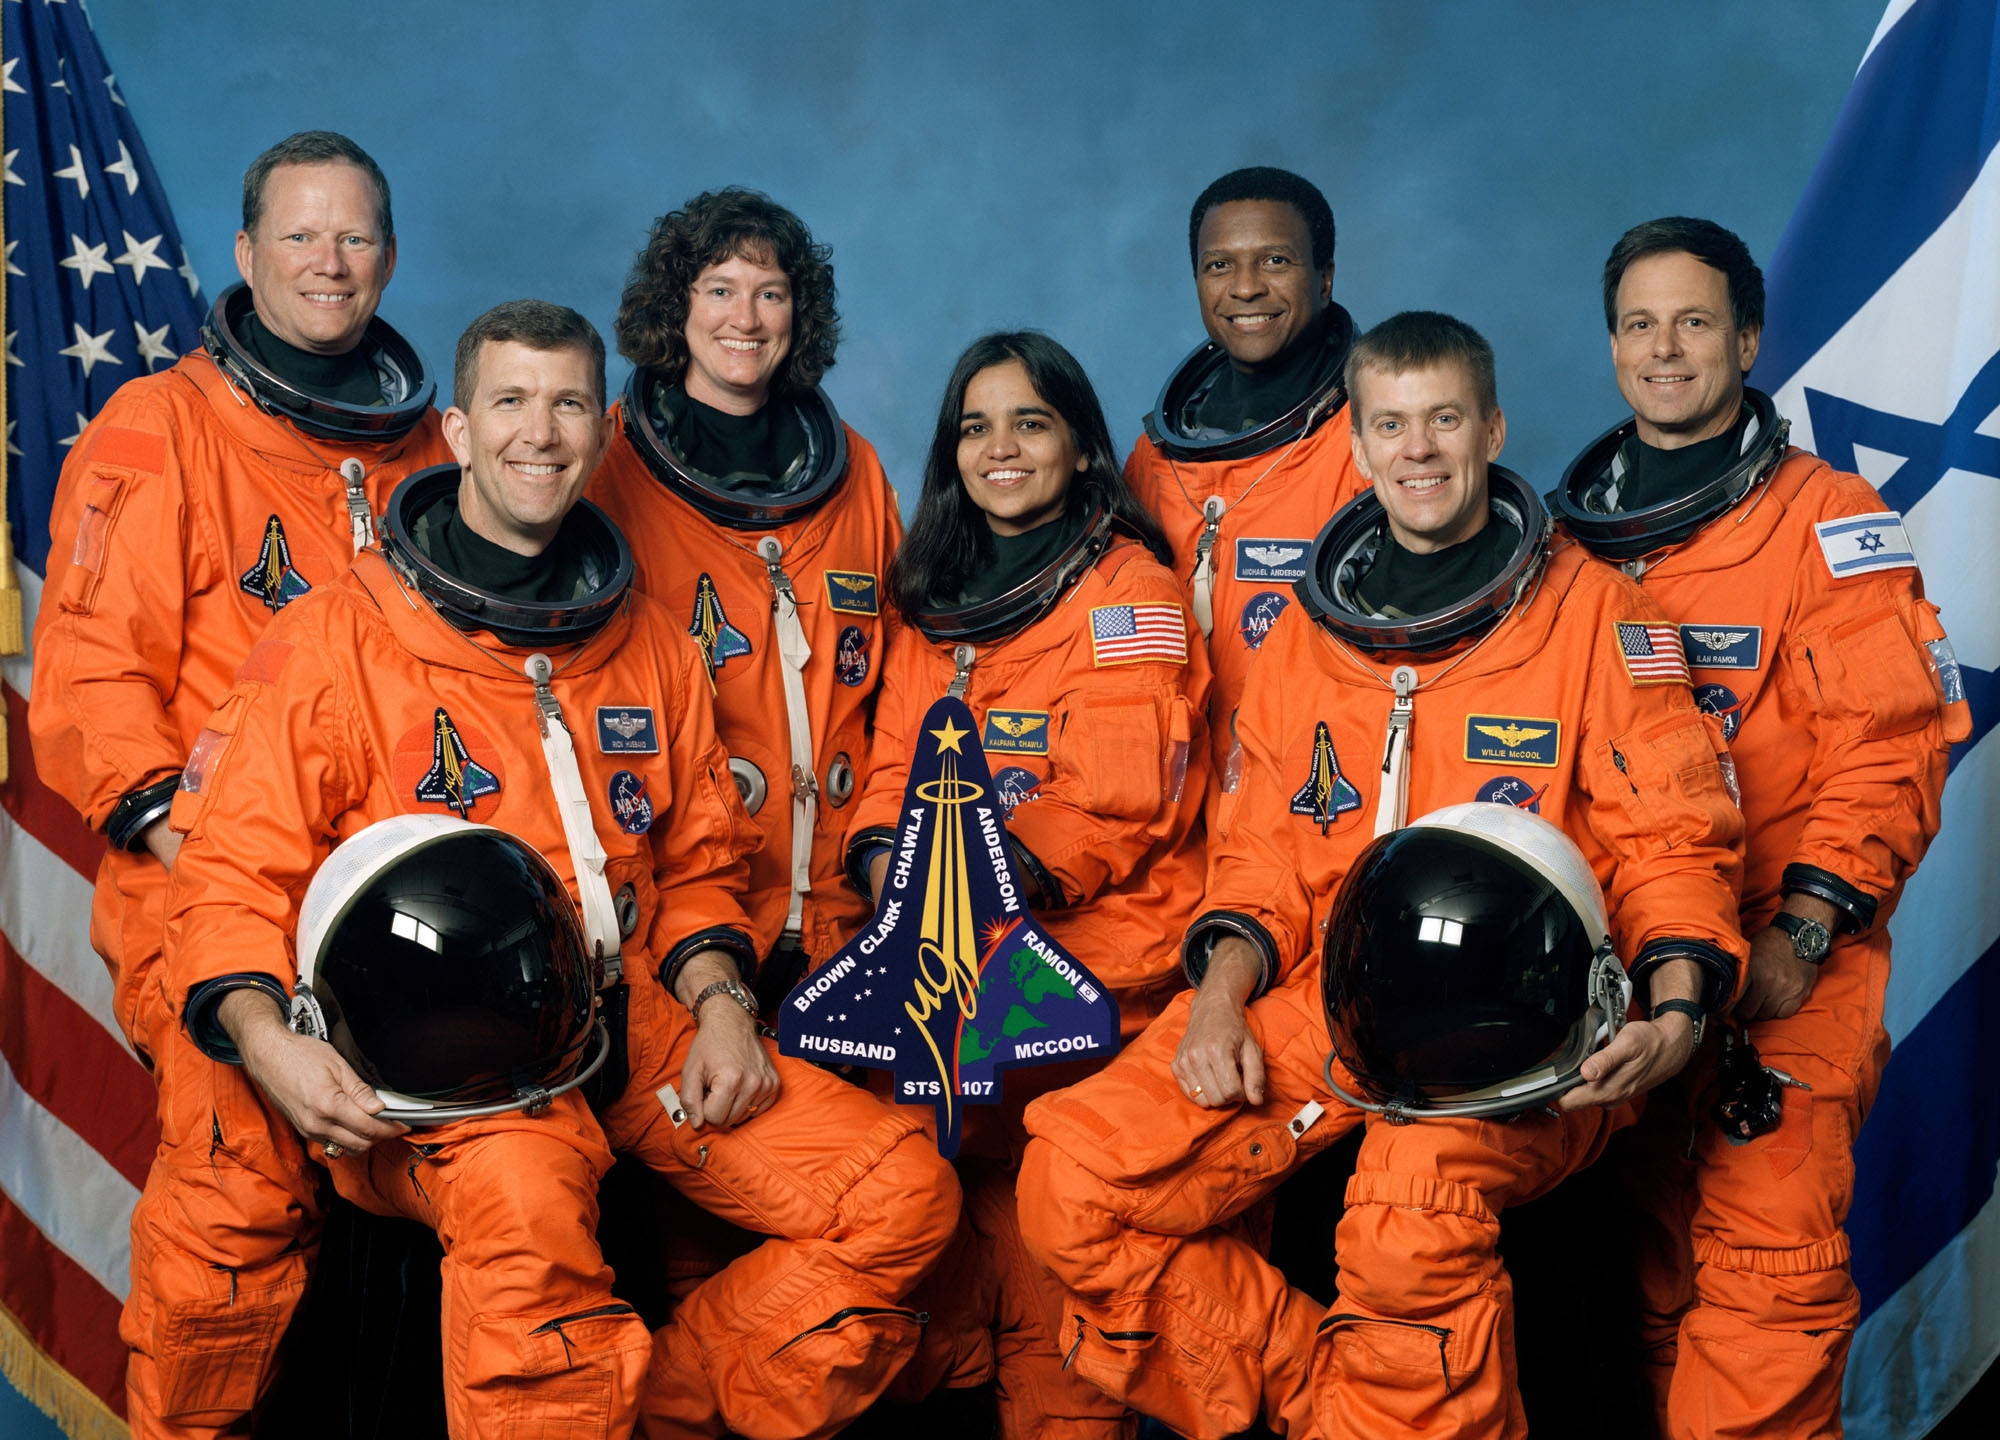 This is the official crew photograph from mission STS-107 on the Space Shuttle Columbia. From left to right are mission specialist David Brown, commander Rick Husband, mission specialist Laurel Clark, mission specialist Kalpana Chawla, mission specialist Michael Anderson, Pilot William McCool, and Israeli payload specialist Ilan Ramon. All were killed when the shuttle disintegrated over Texas in February 2003